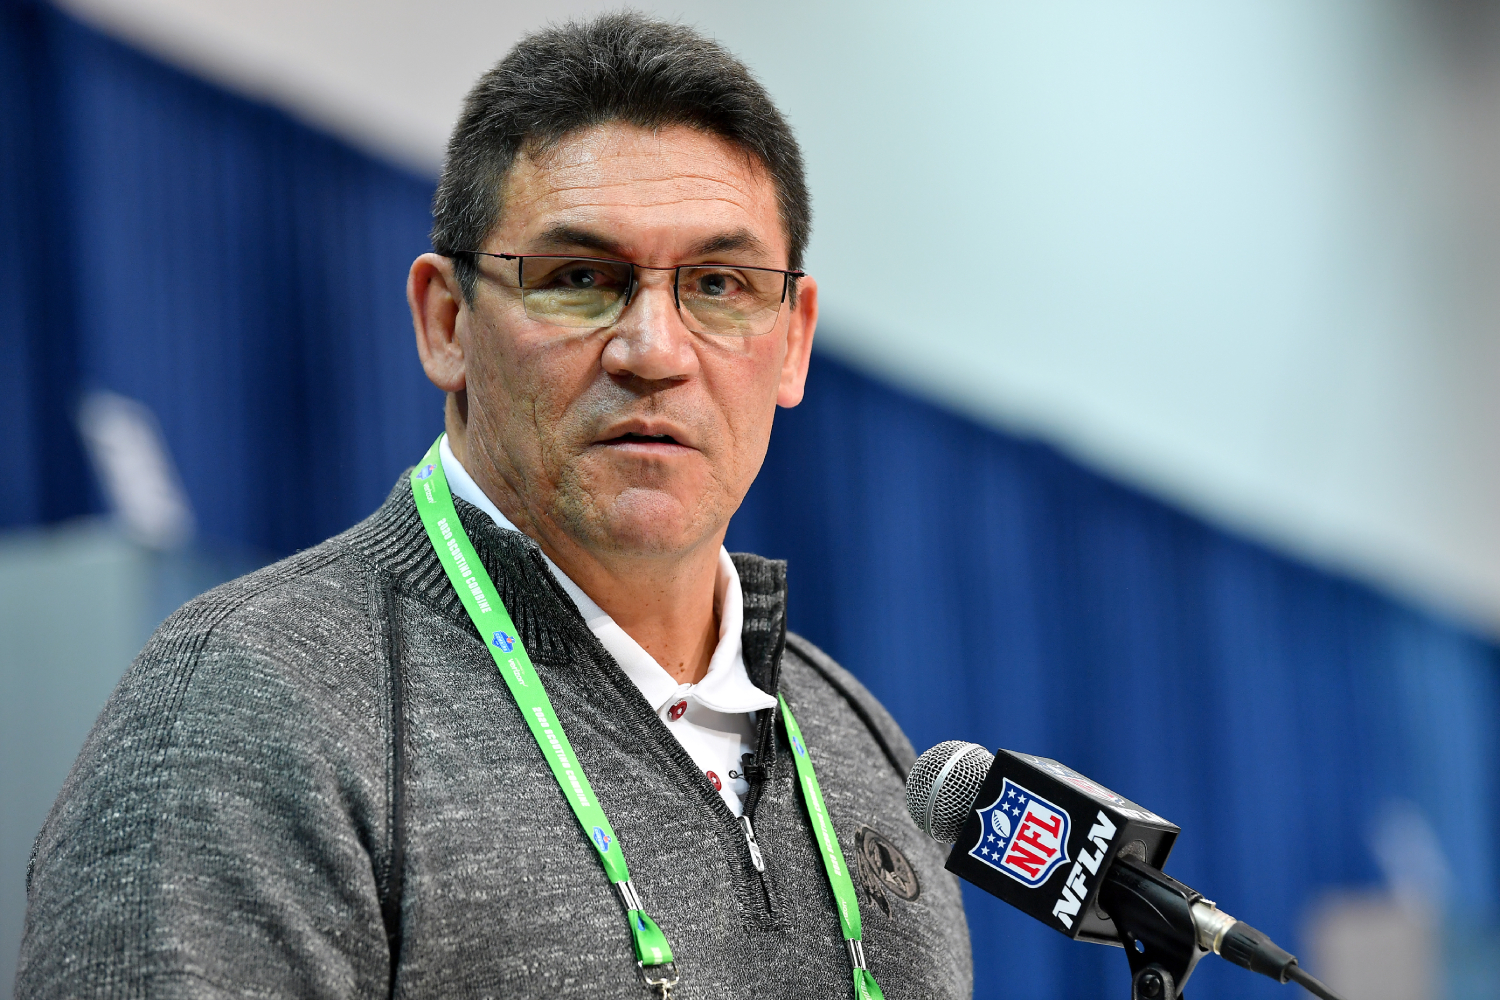 Ron Rivera has become one of the most well-respected coaches in the NFL. So, did he play in the NFL before becoming a coach?